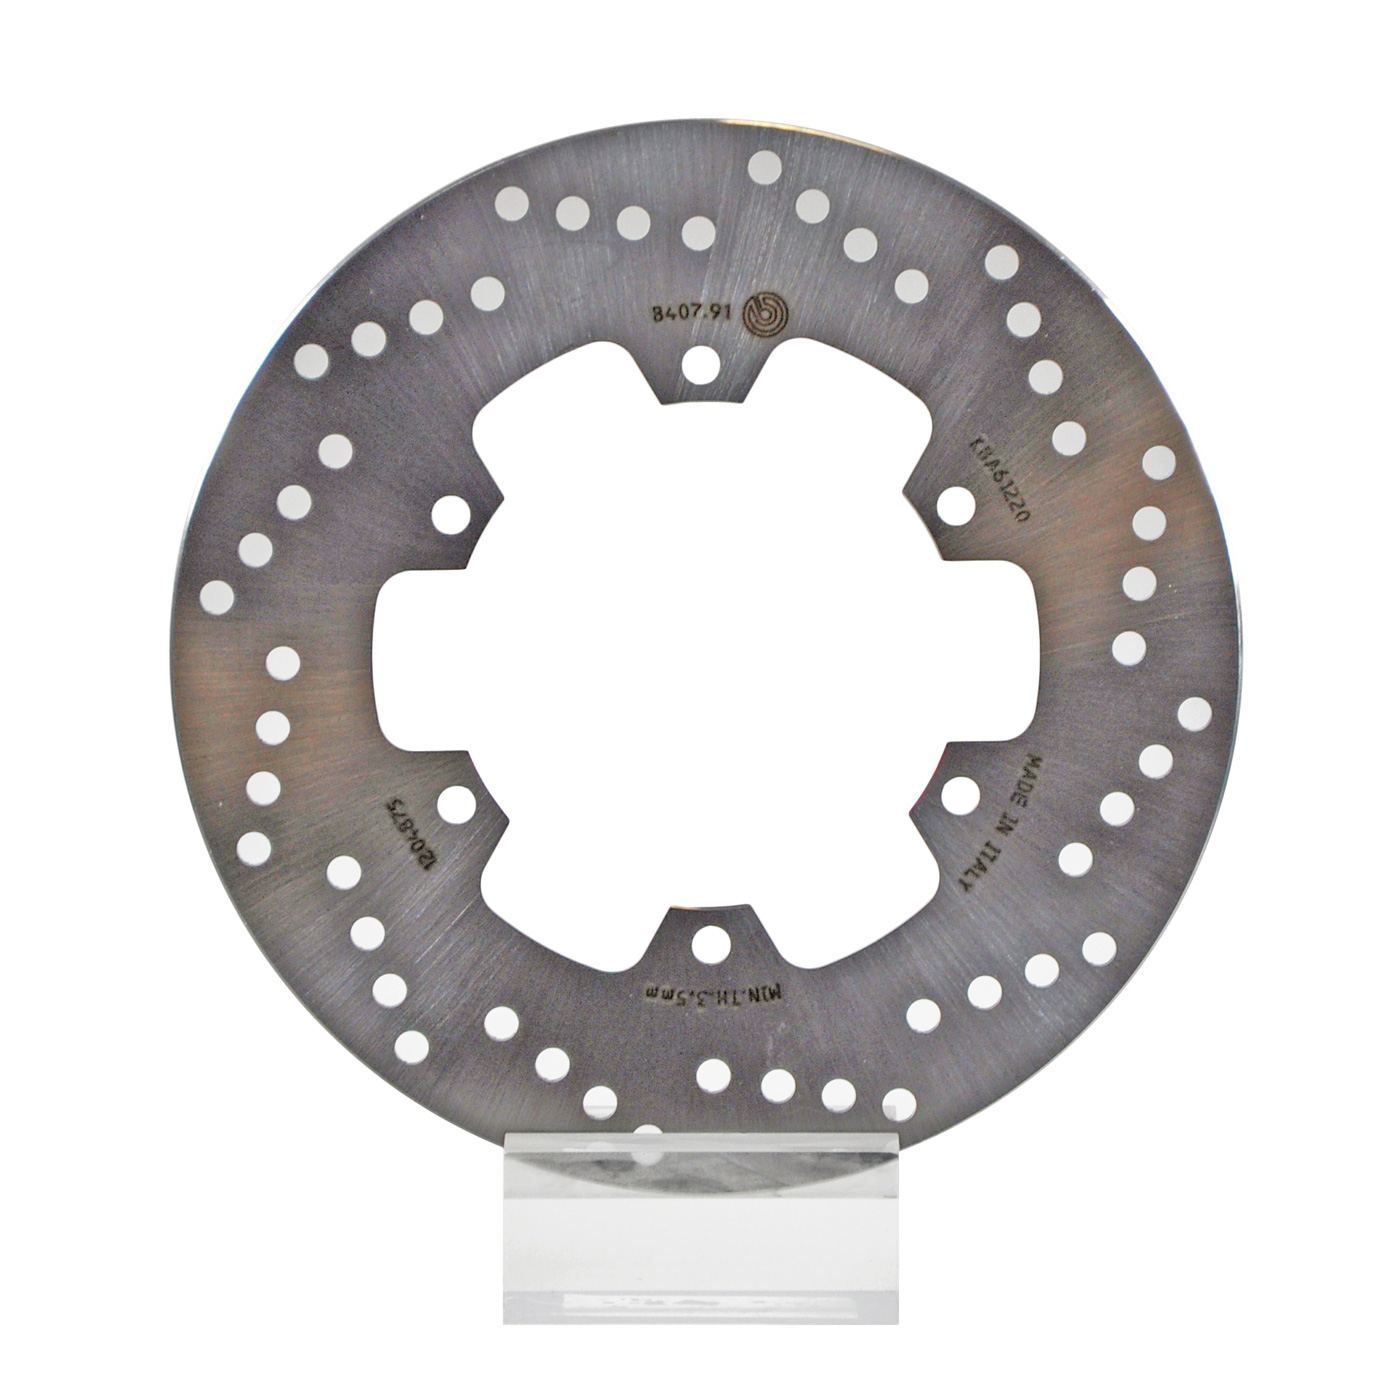 Brembo Serie Oro Brake Rotor 68B40791, one (1) Disk, dim 245x115 mm,  Thickness 4mm